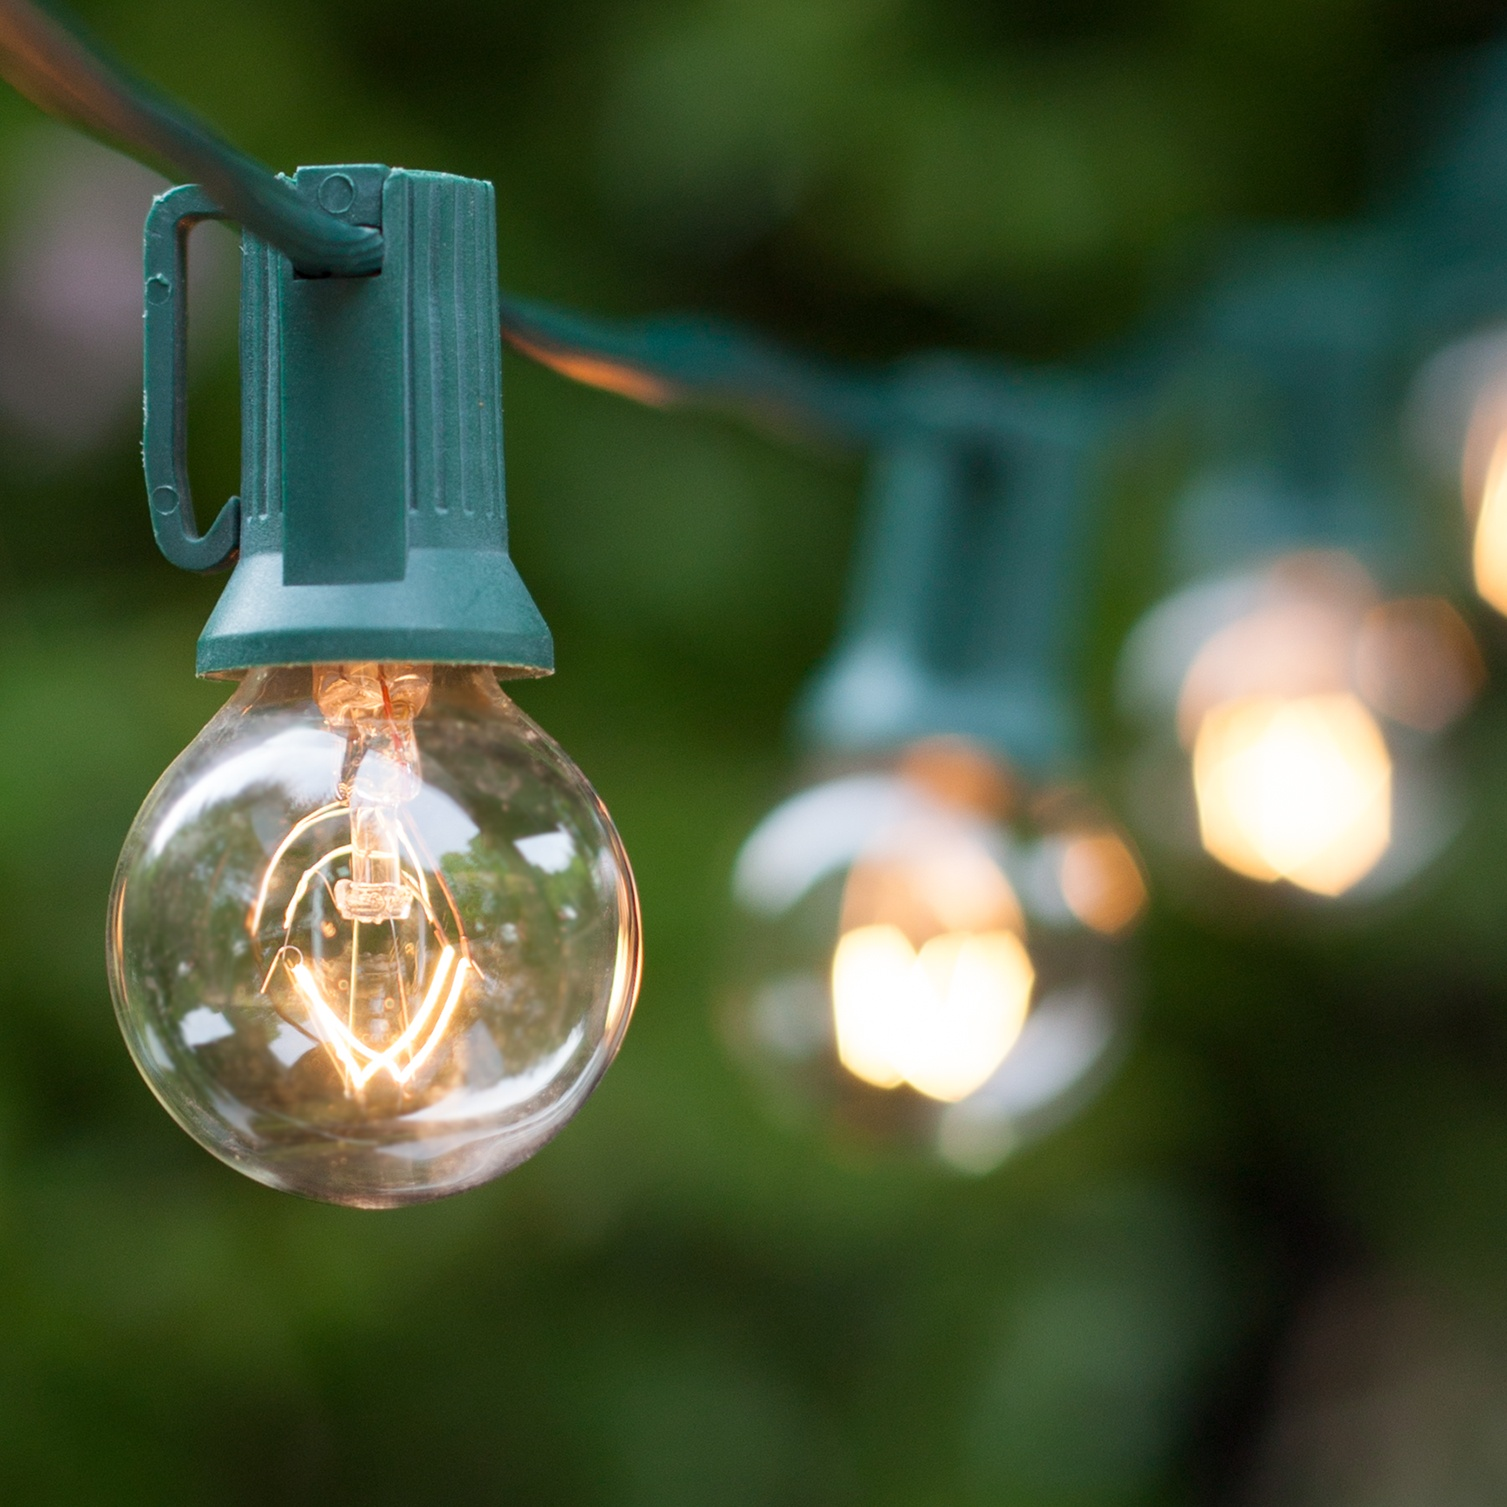 Clear Globe Patio String Lights : Patio Lights - Commercial Clear Globe String Lights, 50 G30 E12 Bulbs Green Wire